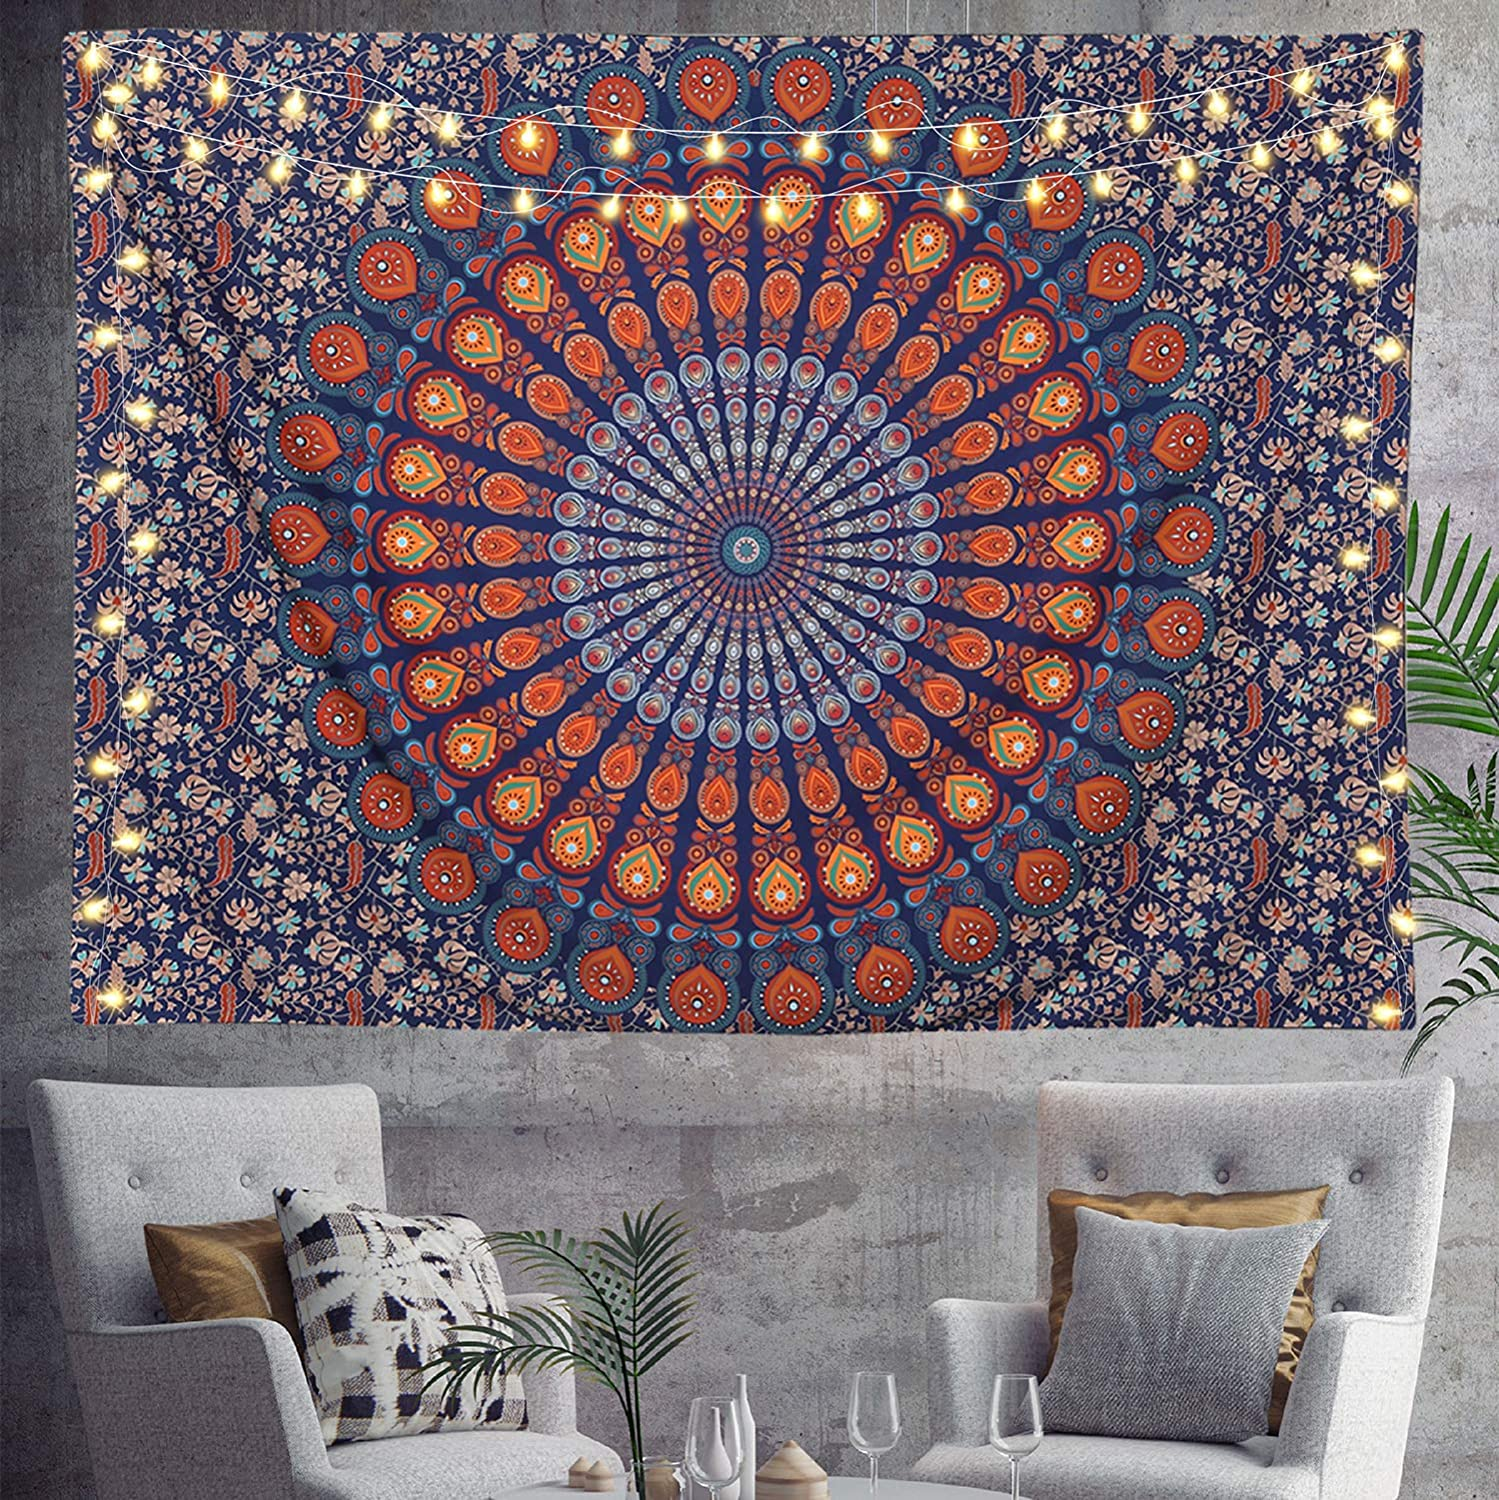 HOMKUMY Mandala Wall Tapestry, Peacock Mandala Indian Bohemian Hippie Tapestry Psychedelic Wall Hanging Tapestry for Home Decor Bedroom Living Room, Golden Blue Large 79x58 Inches